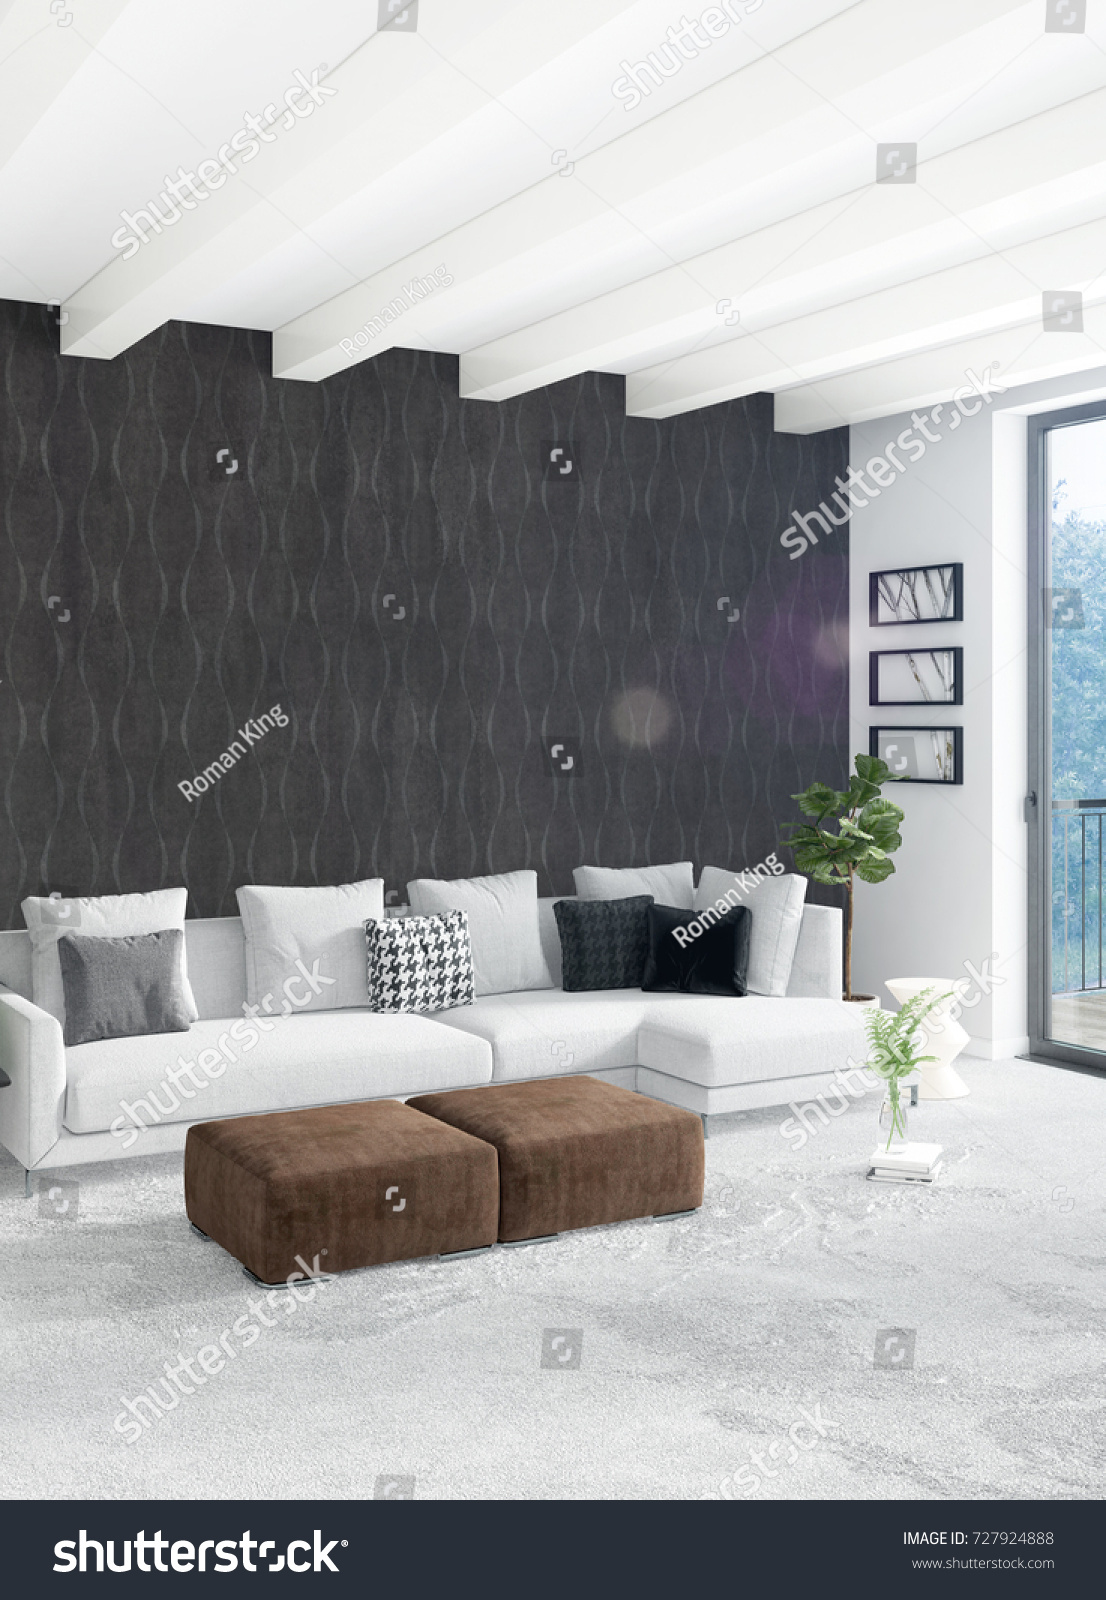 Loft bedroom in modern style interior design with eclectic wall and stylish sofa 3d rendering